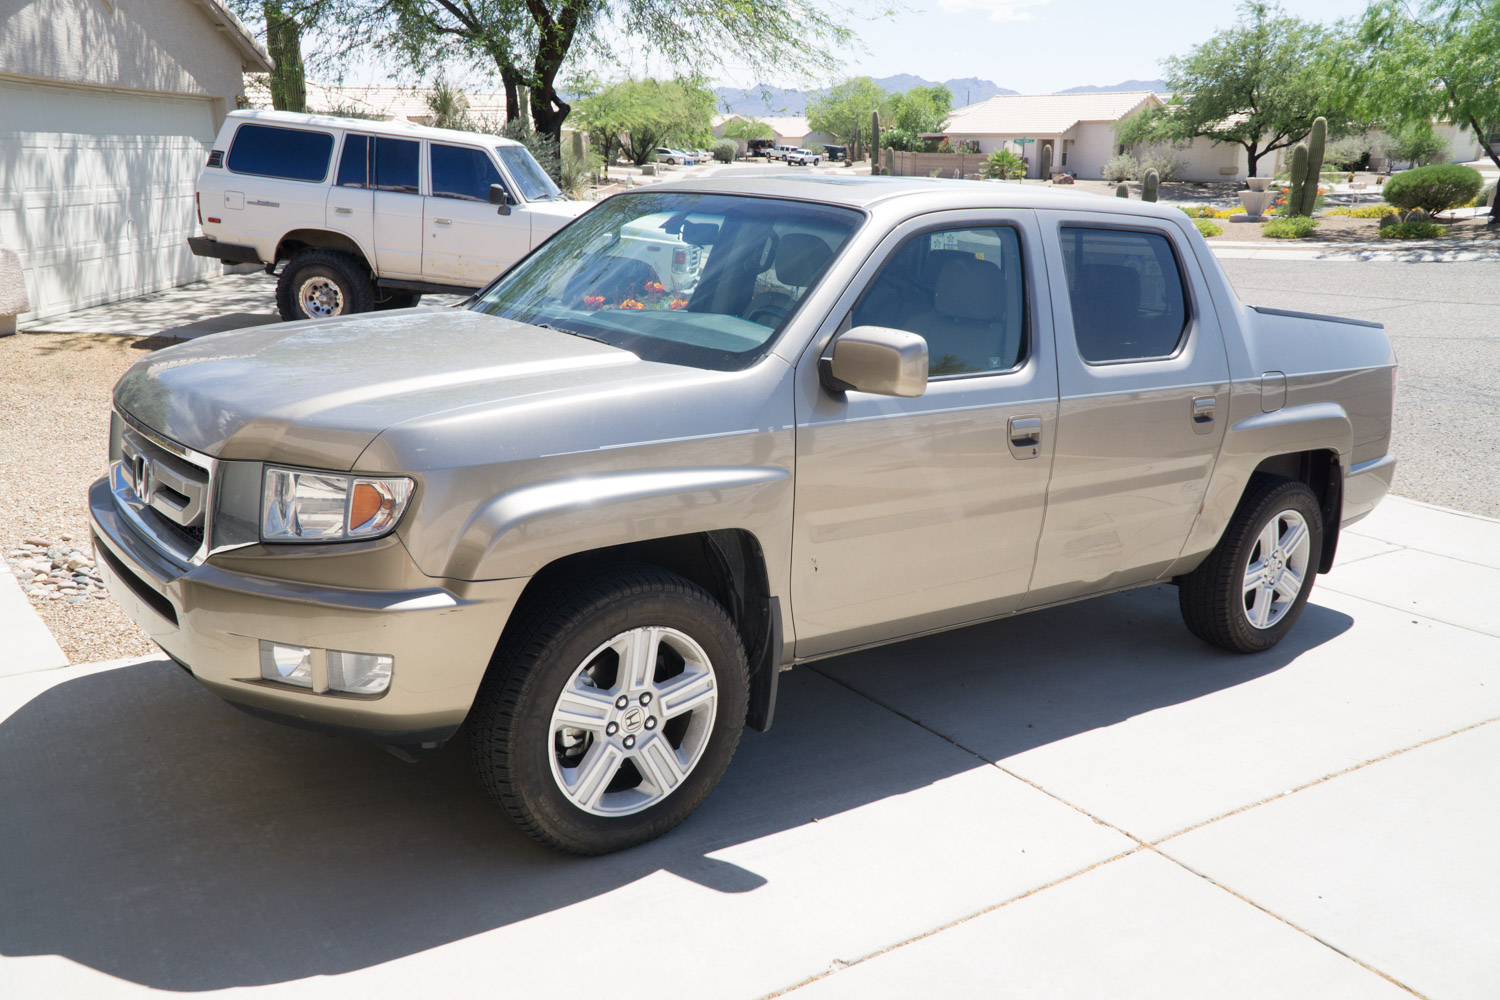 Bye bye Honda Ridgeline; will I miss you?